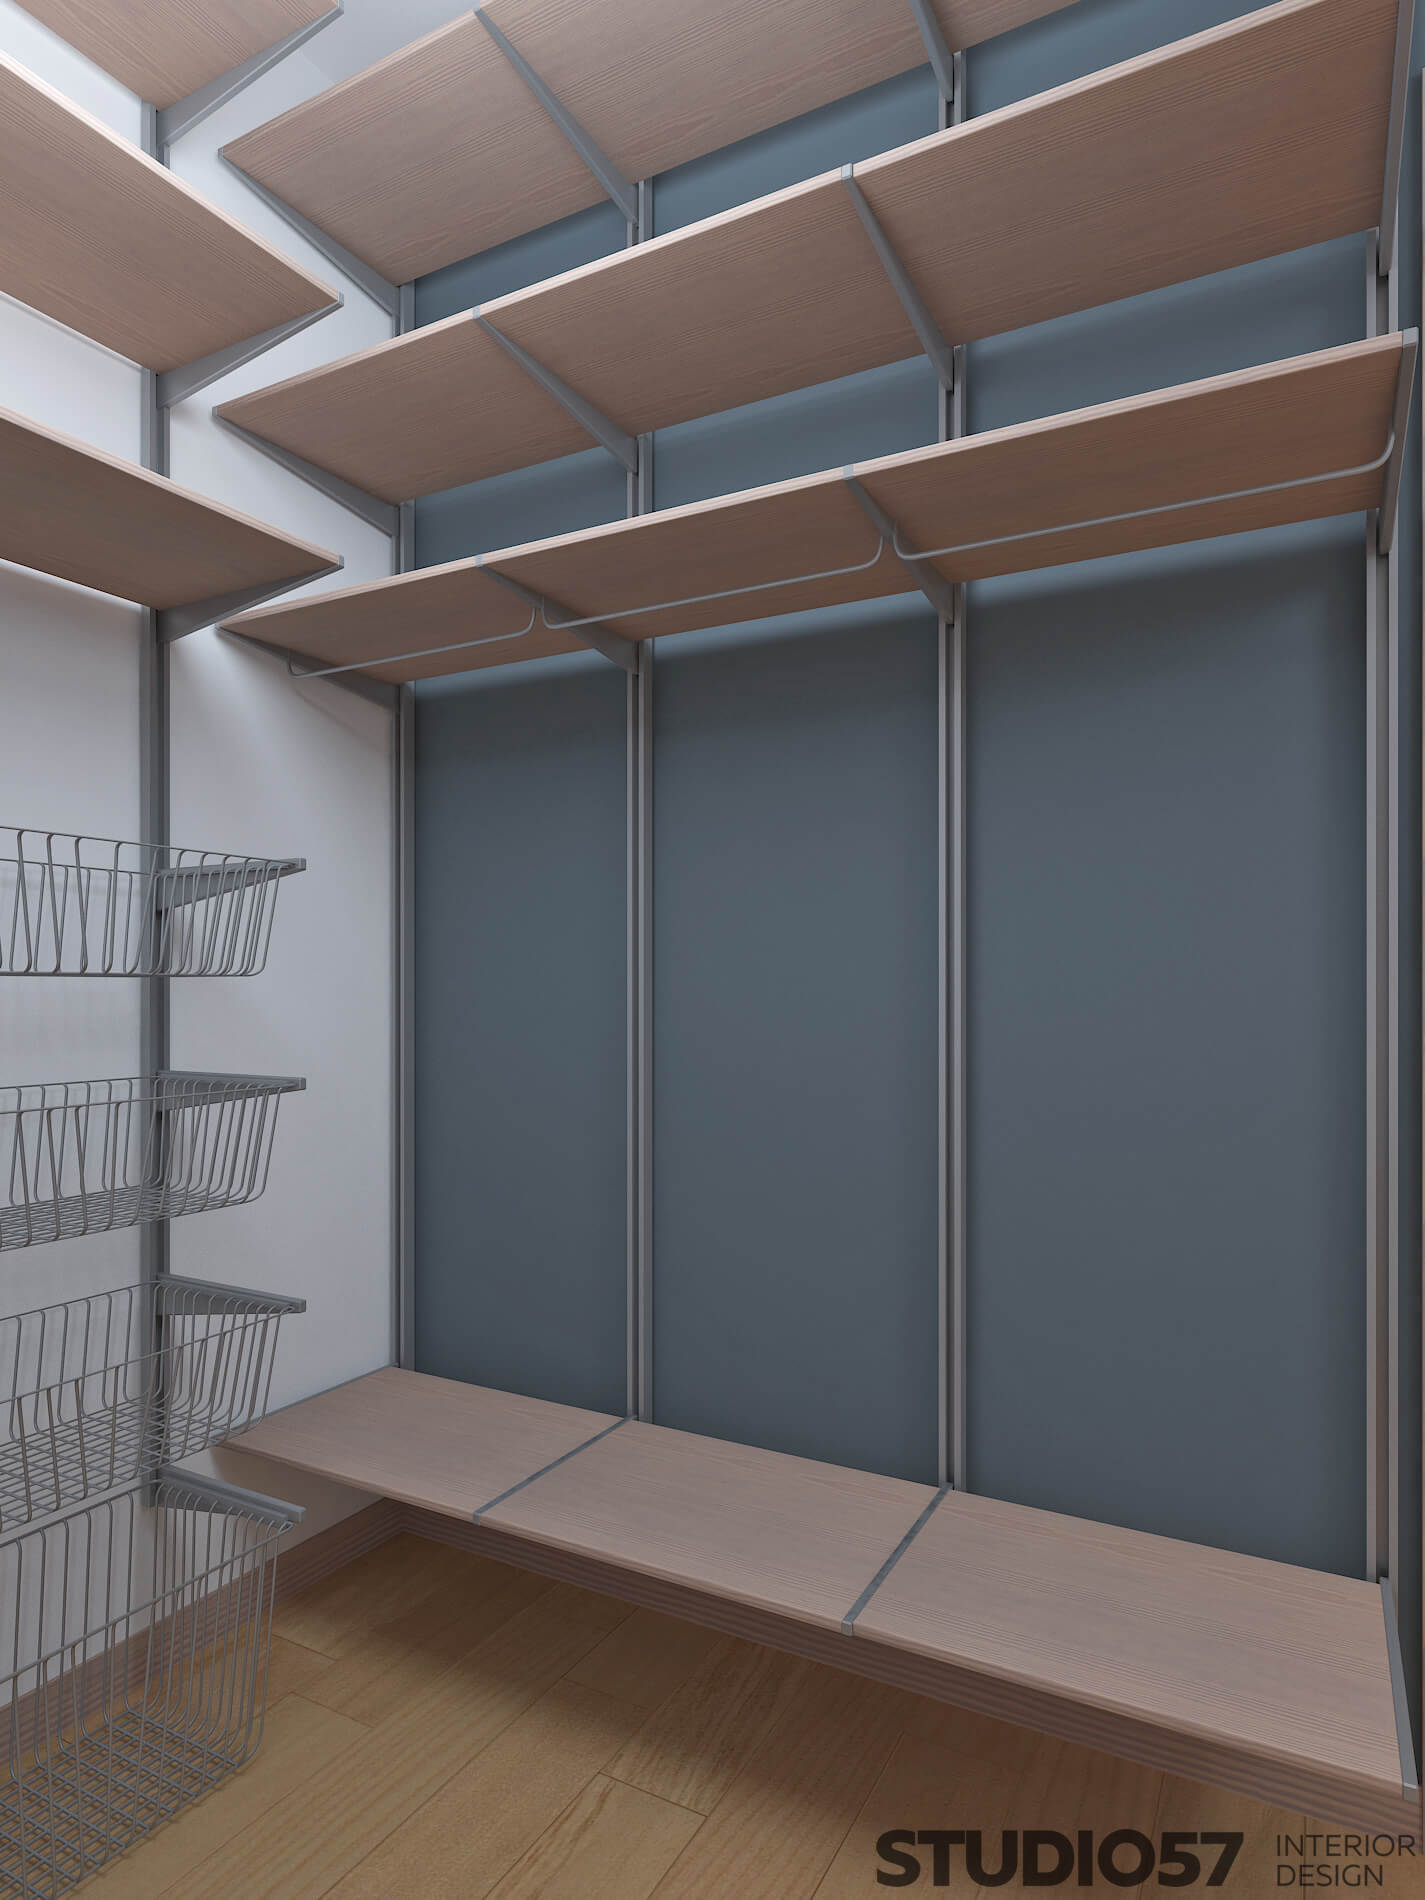 Cloakroom with shelves